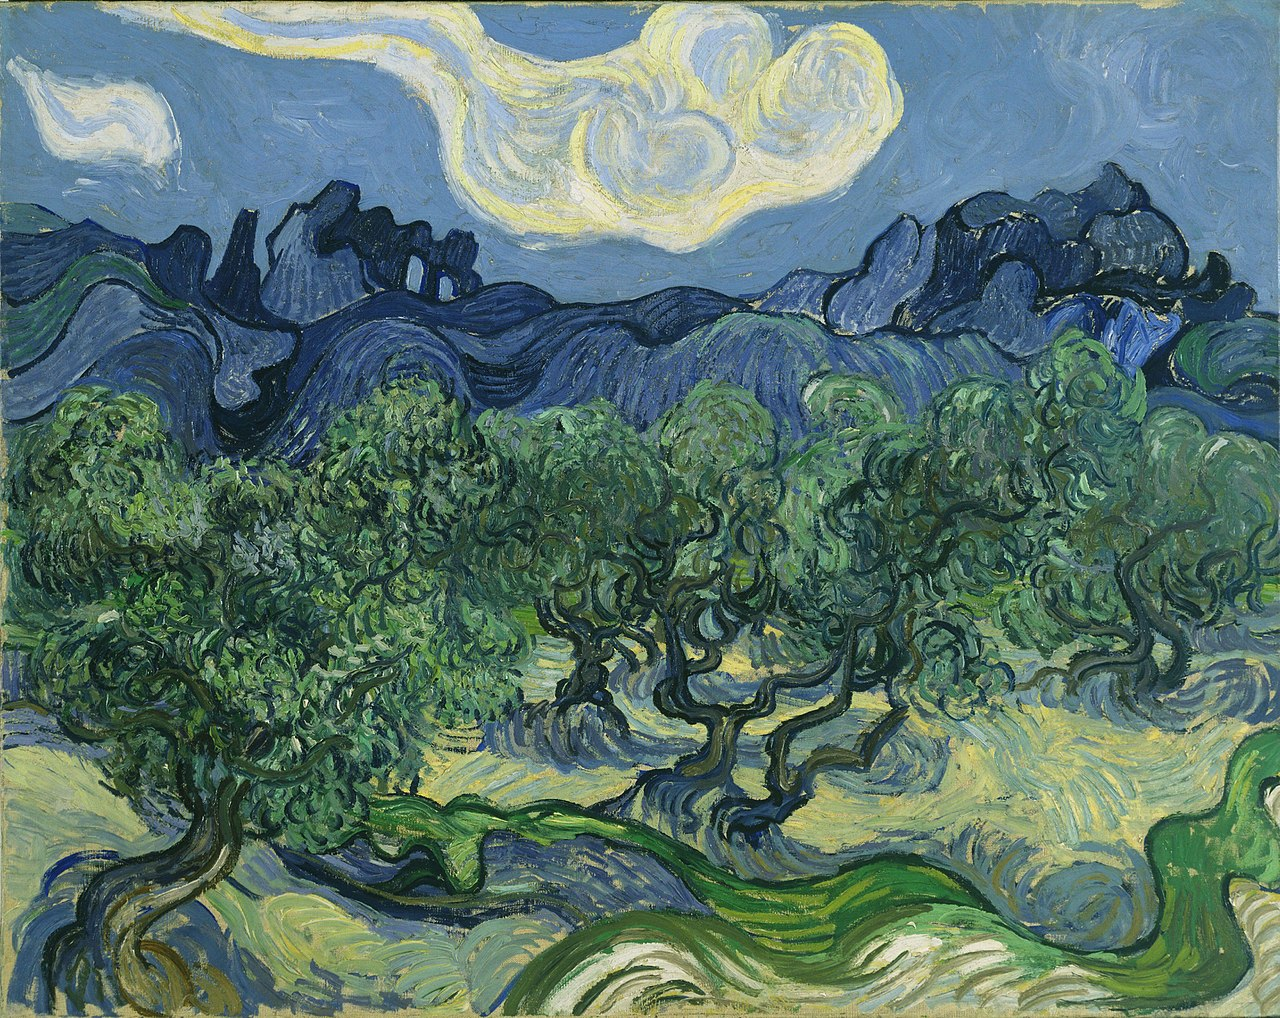 A painting of intense green gnarled old olive trees with distant rolling blue mountains behind under a light blue sky with a large fluffy white cloud in the center